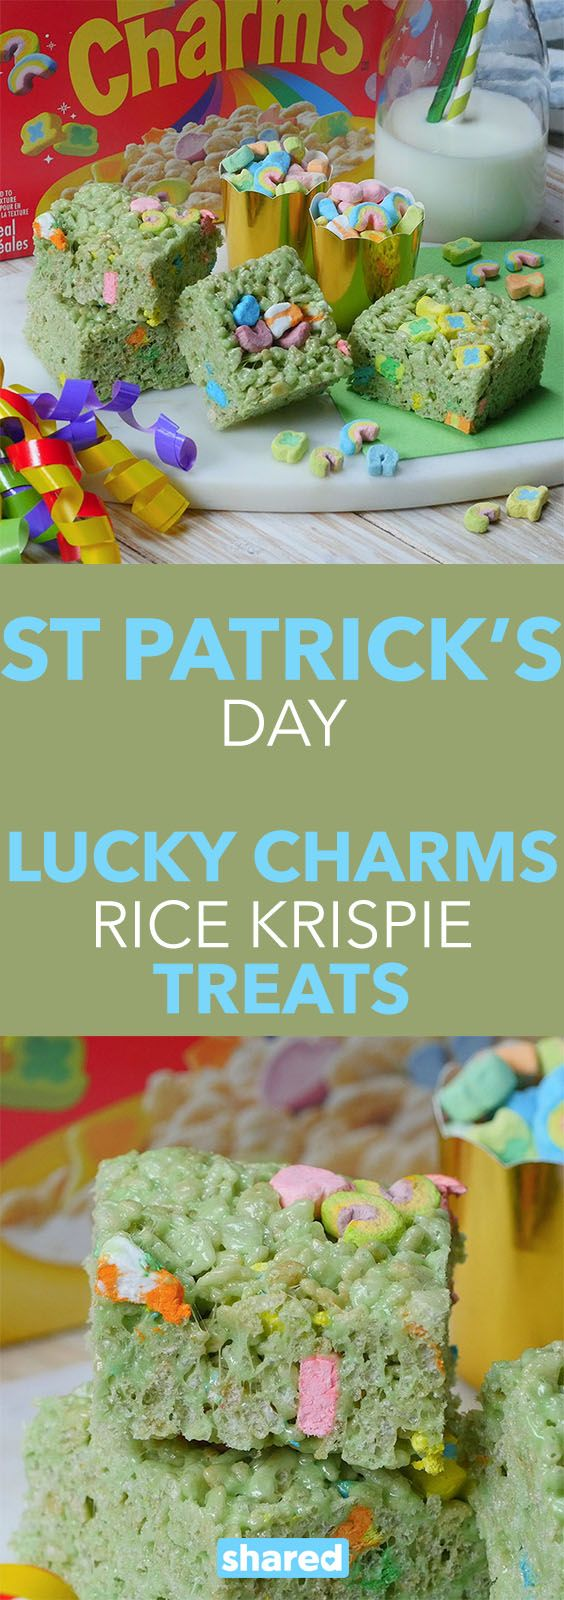 How do you celebrate St. Patrick's Day? From eating green food, to going to the bar for a green beer, there are lots of ways to celebrate the one day of the year that everyone is Irish. Try making this family favorite with a St. Patty's Day spin with this recipe. You can even make these St. Patrick's Day Lucky Charms Rice Krispie Treats with your kids this March Break.